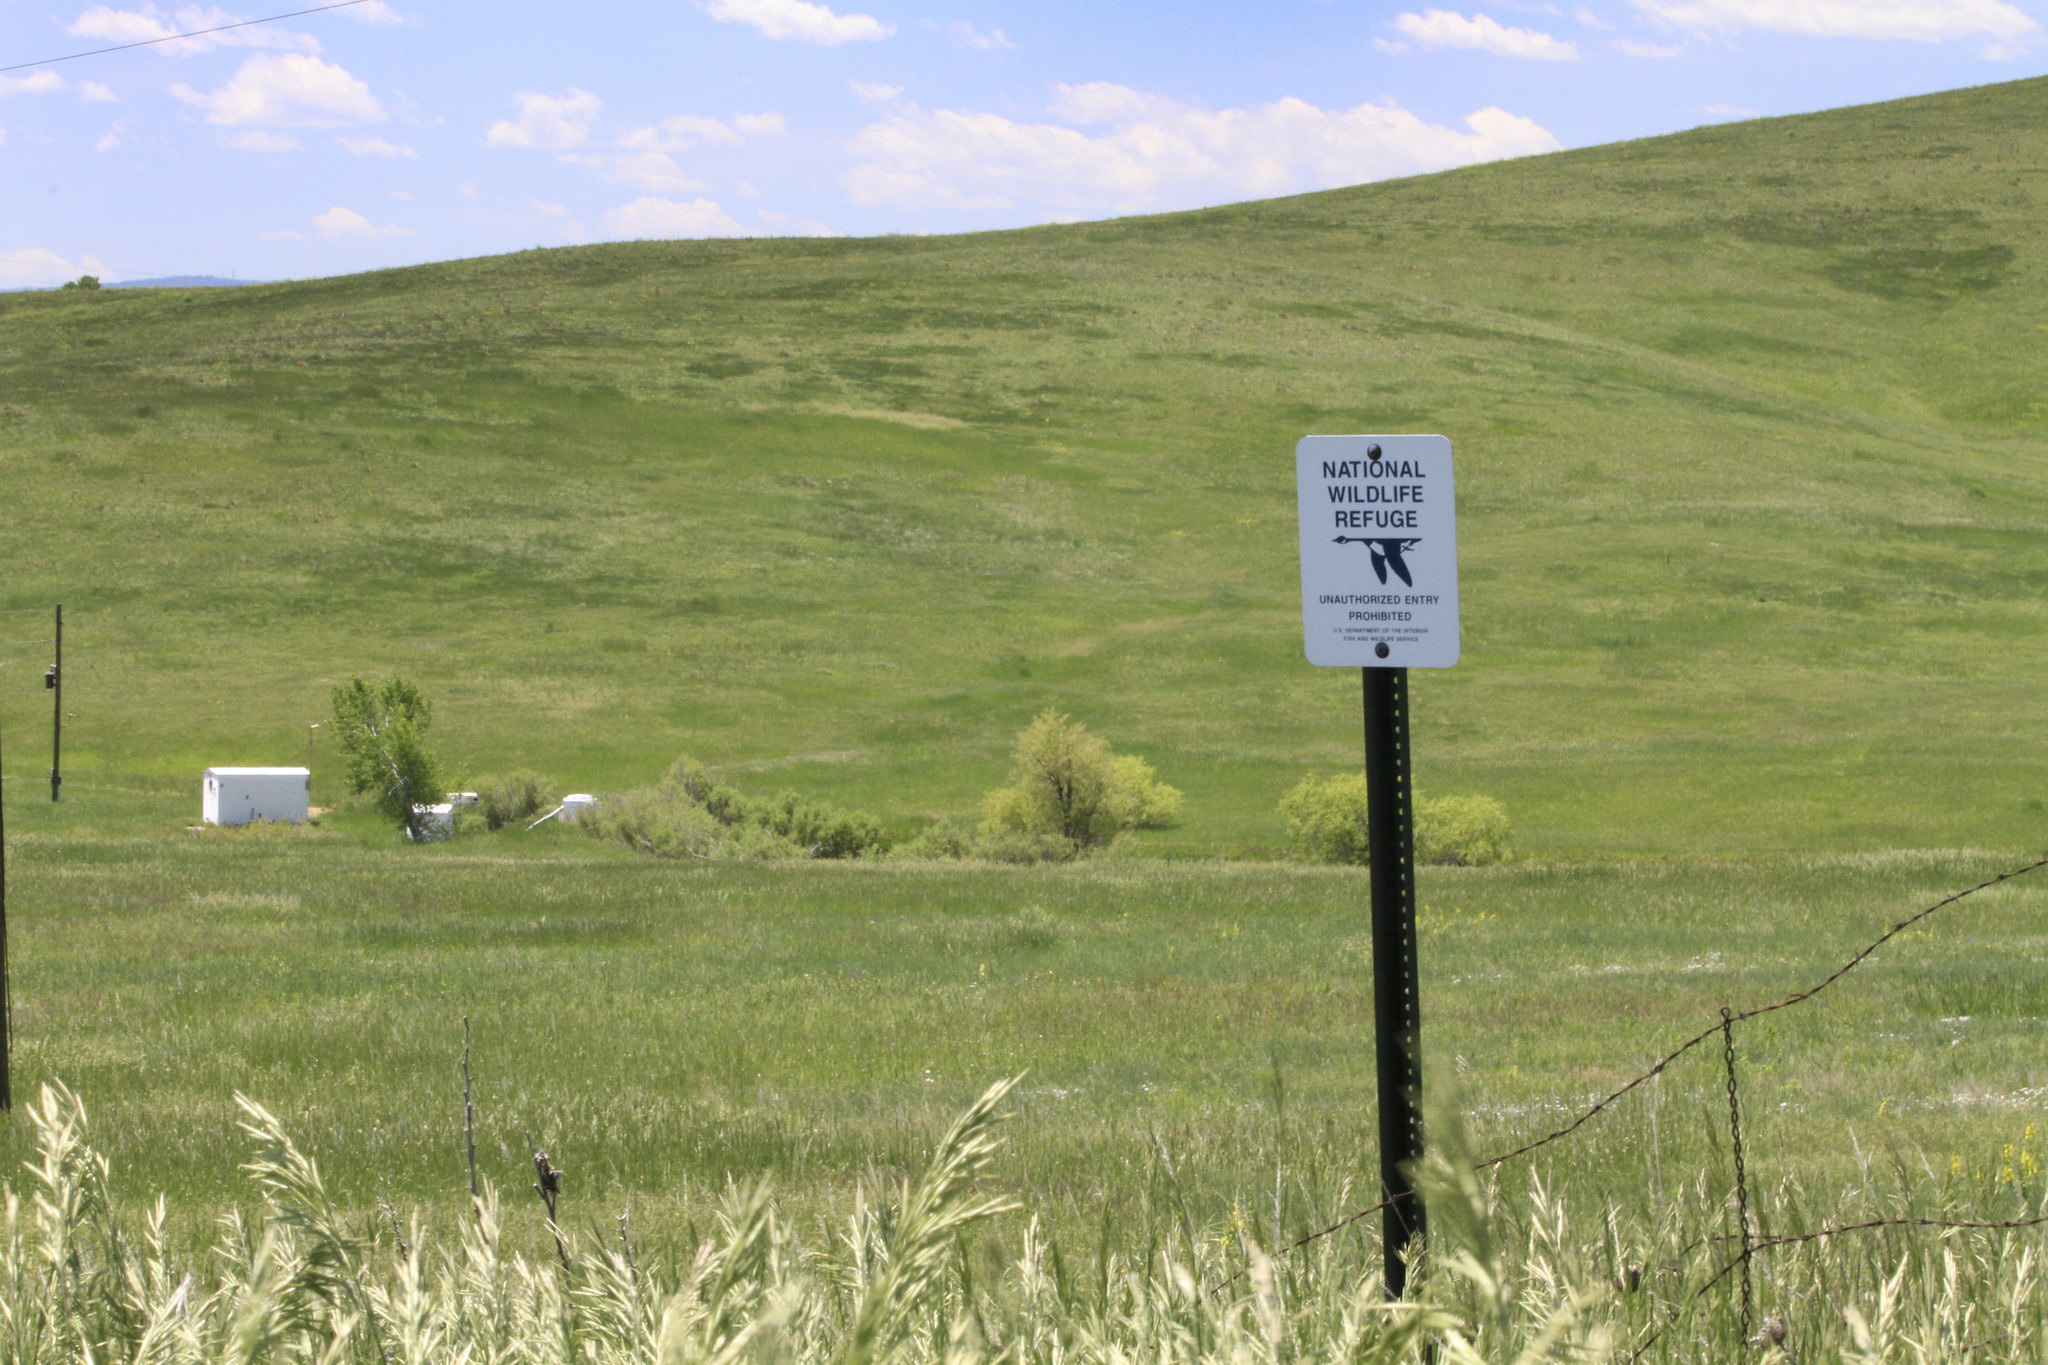 A white sign announces the border of the Rocky Flats National Wildlife Refuge. In the distance, in a grassy field beside a creek, white buildings and other infrastructure perform ongoing monitoring.